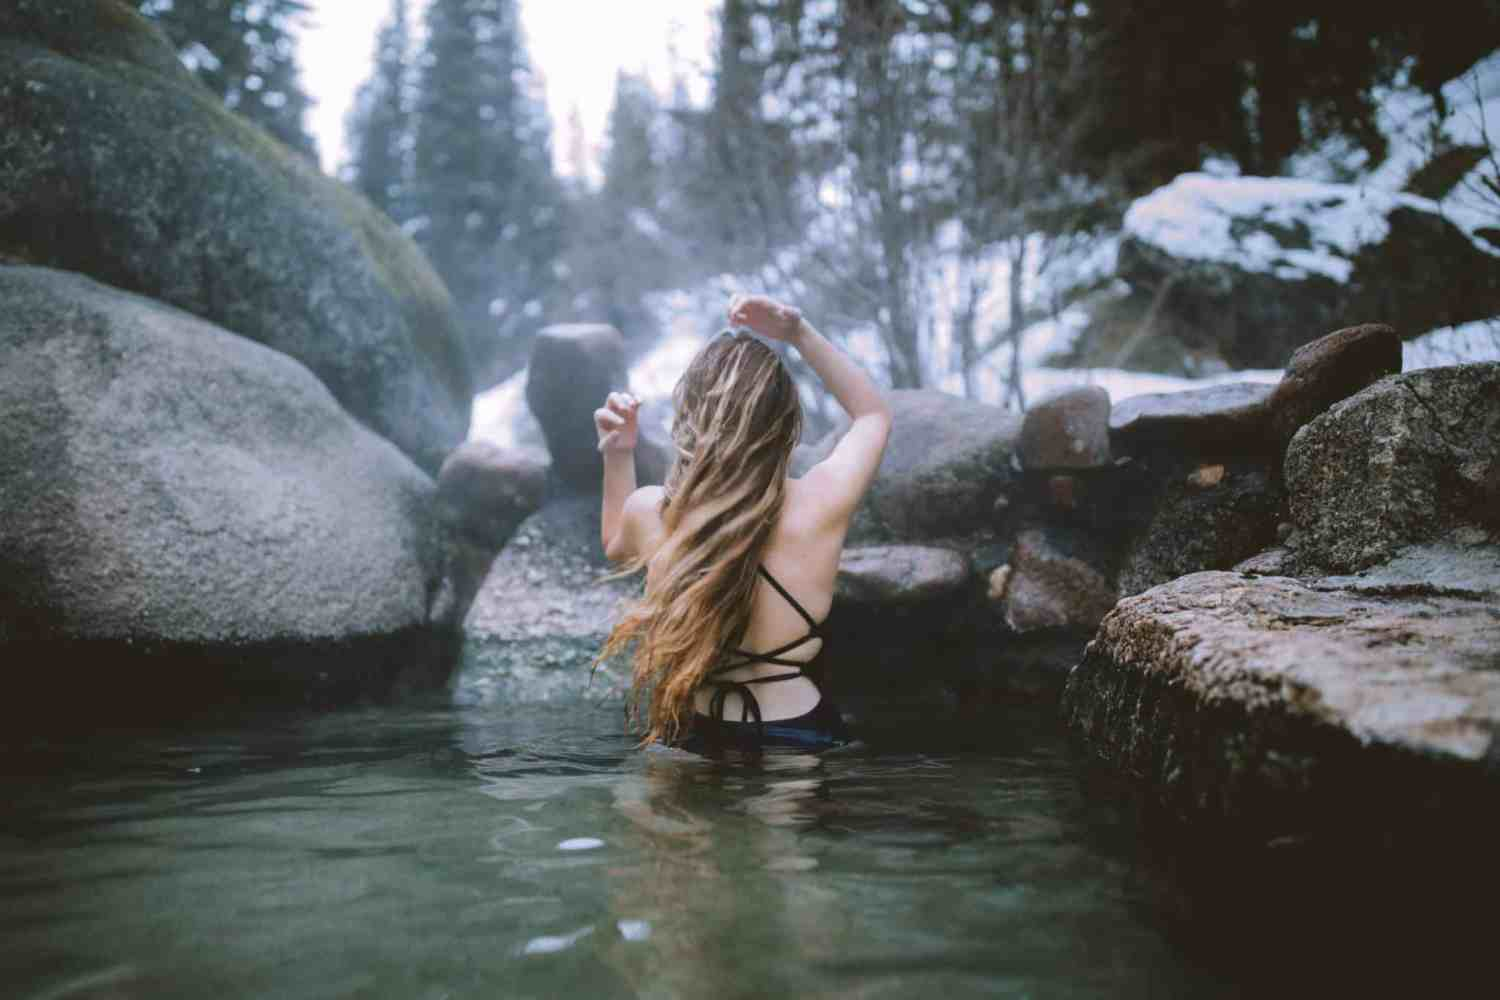 Nude Hiking and Soaking in the Pacific Northwest: World